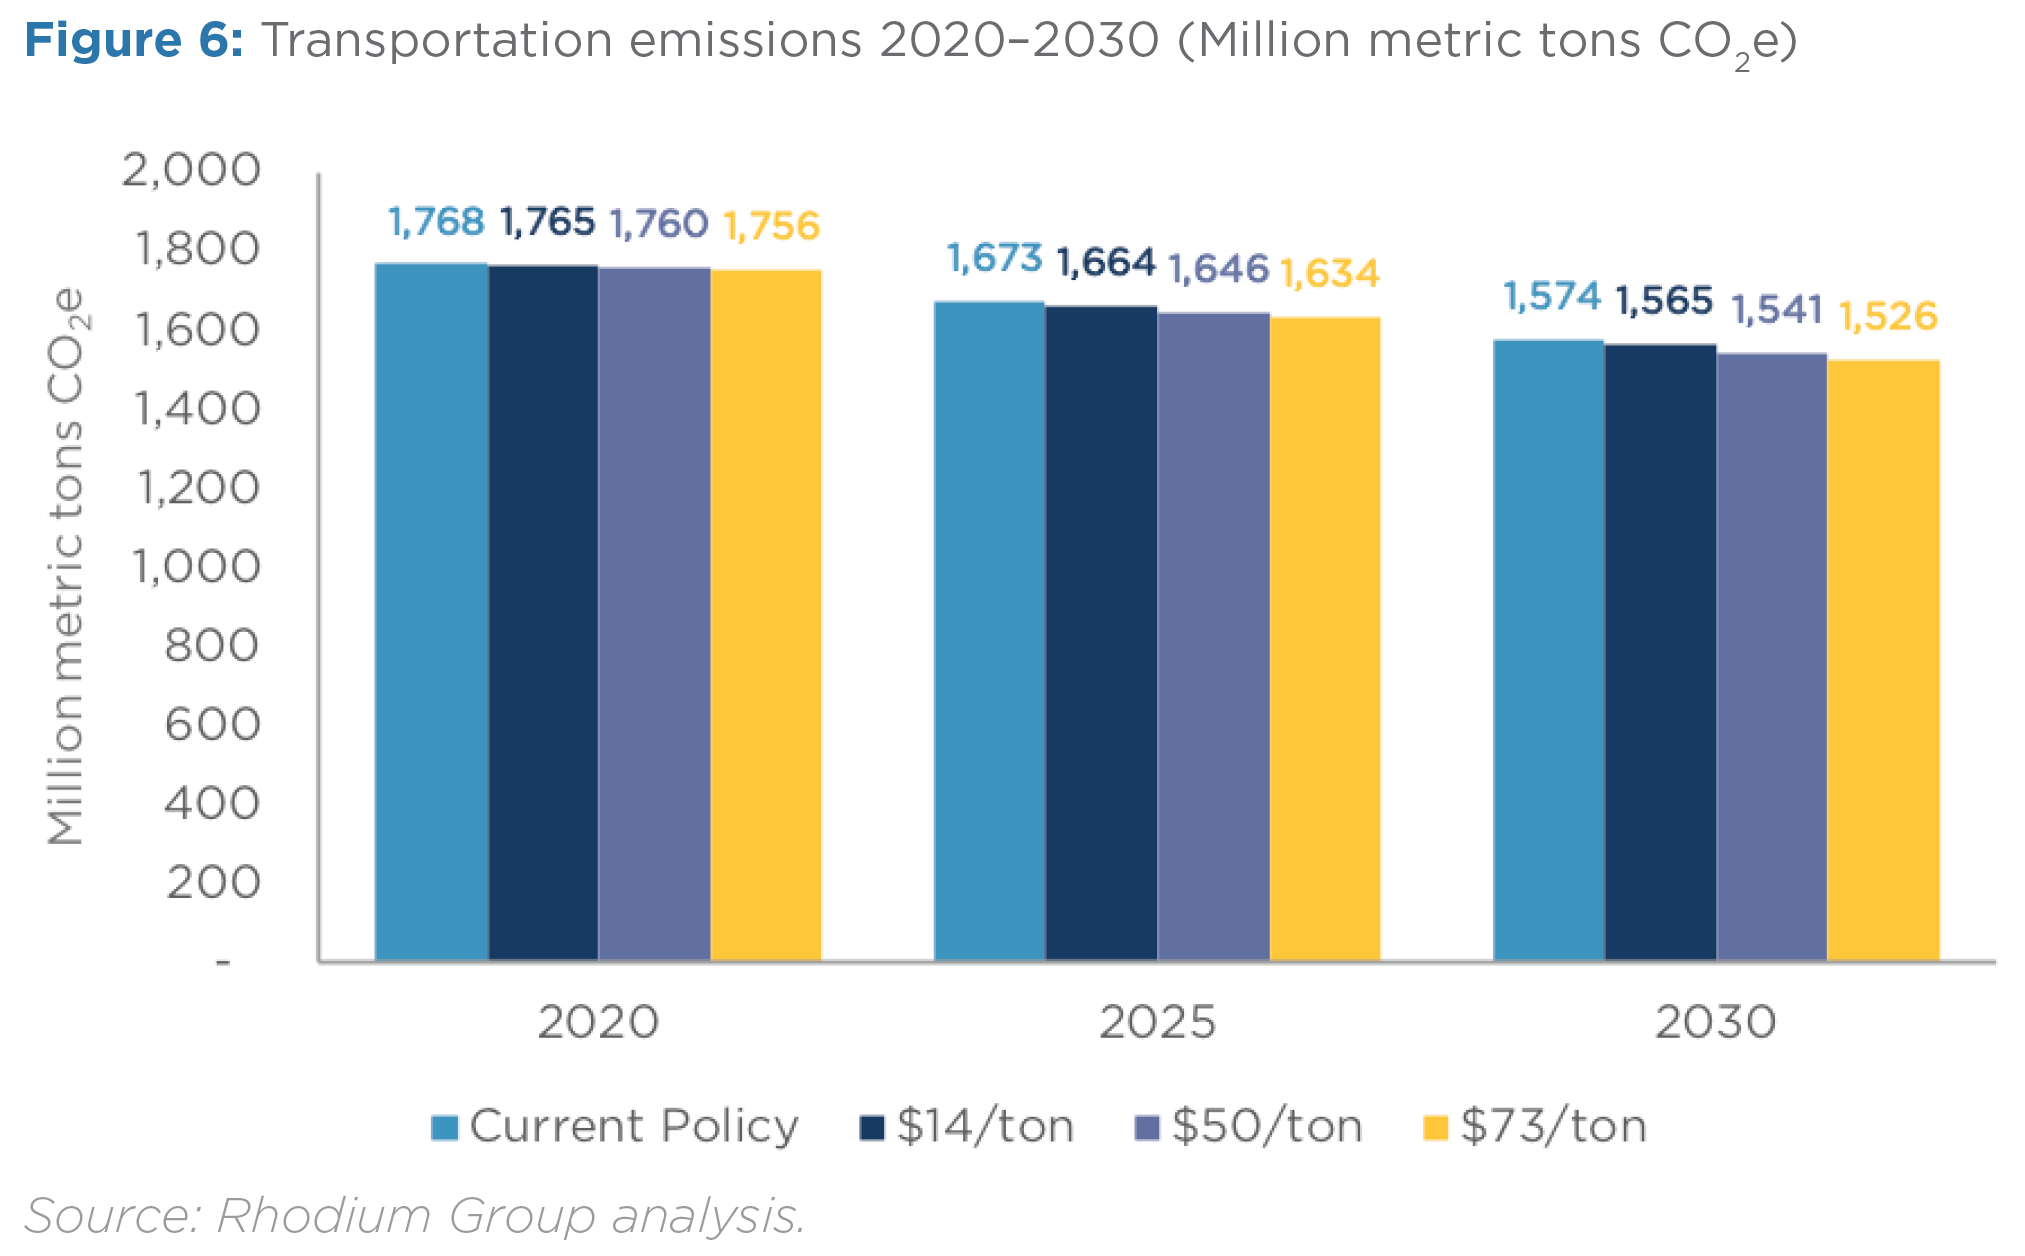 image of carbon tax effects on transportation emissions